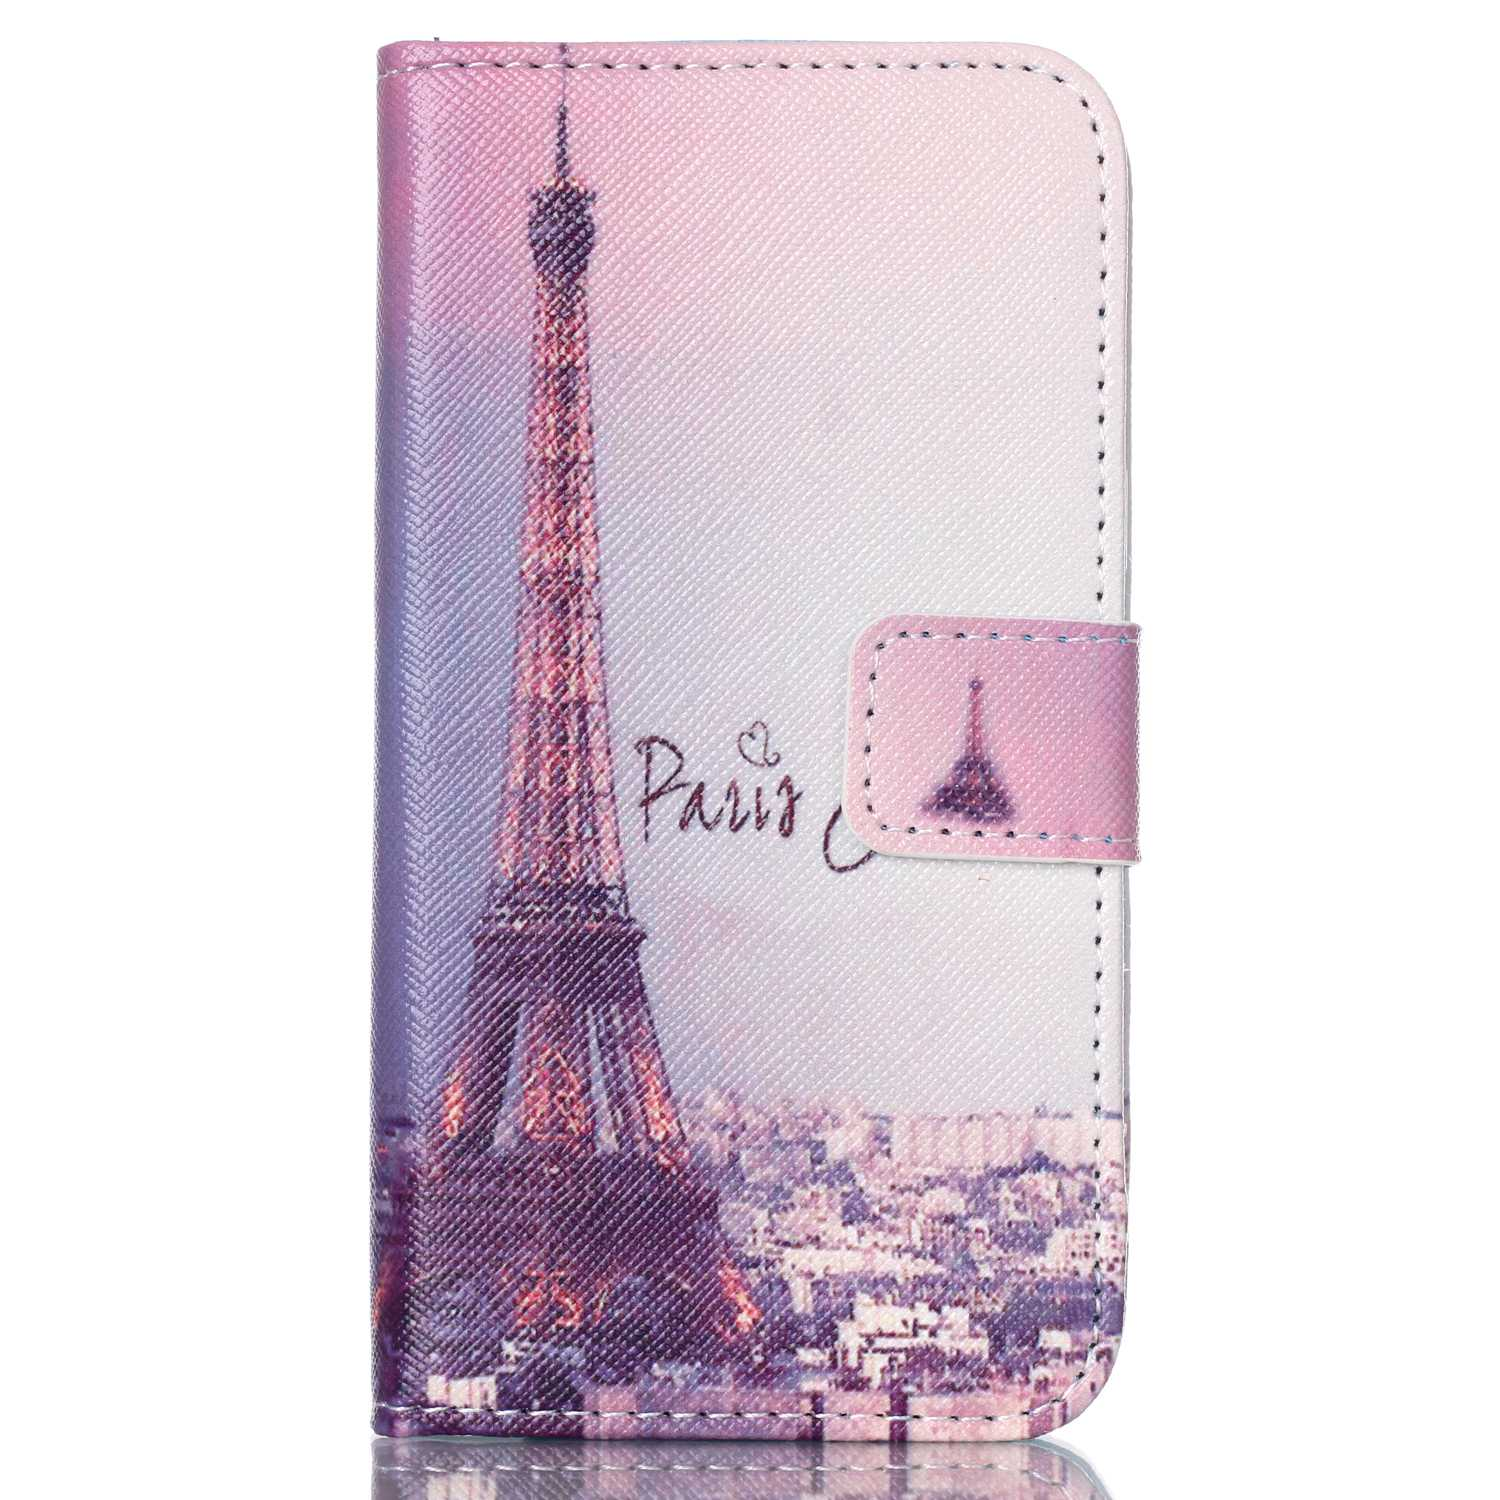 Luxury Painting cover case For Samsung Galaxy J1 J100 <font><b>J100H</b></font> J100F J1ace J2 PU Leather flip Wallet Stand design image